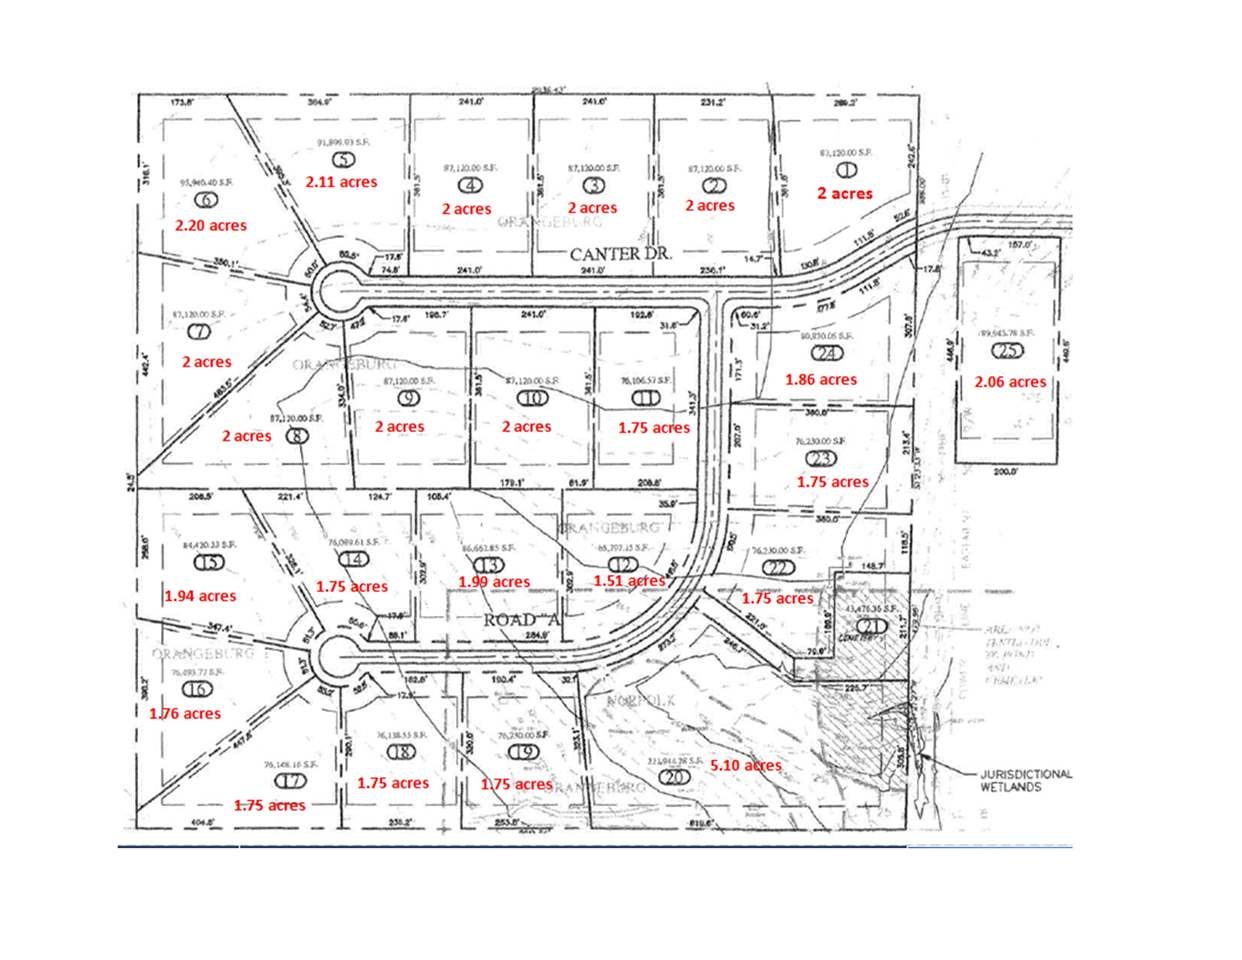 Lot 2 The Farm - Phase 2 , Perry, GA 31069